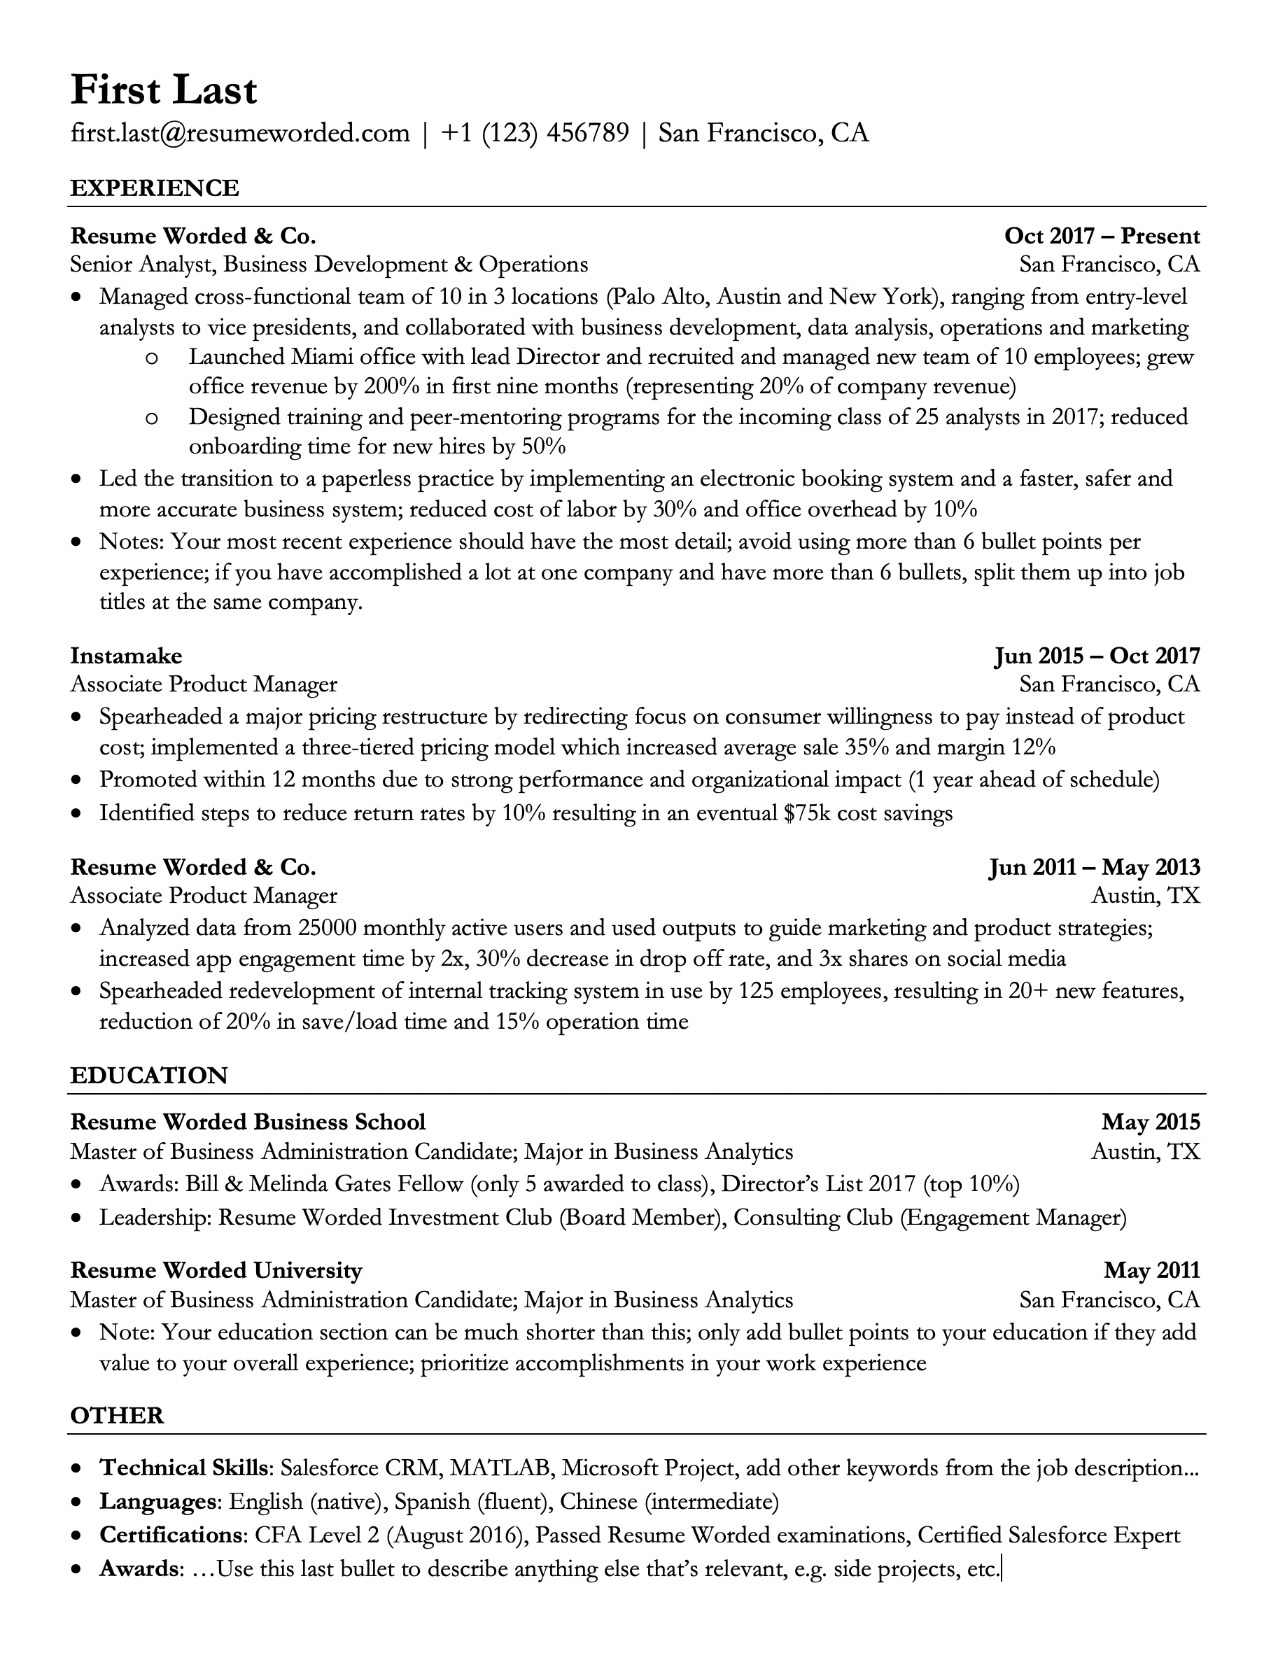 cv i have worked in english on several projects